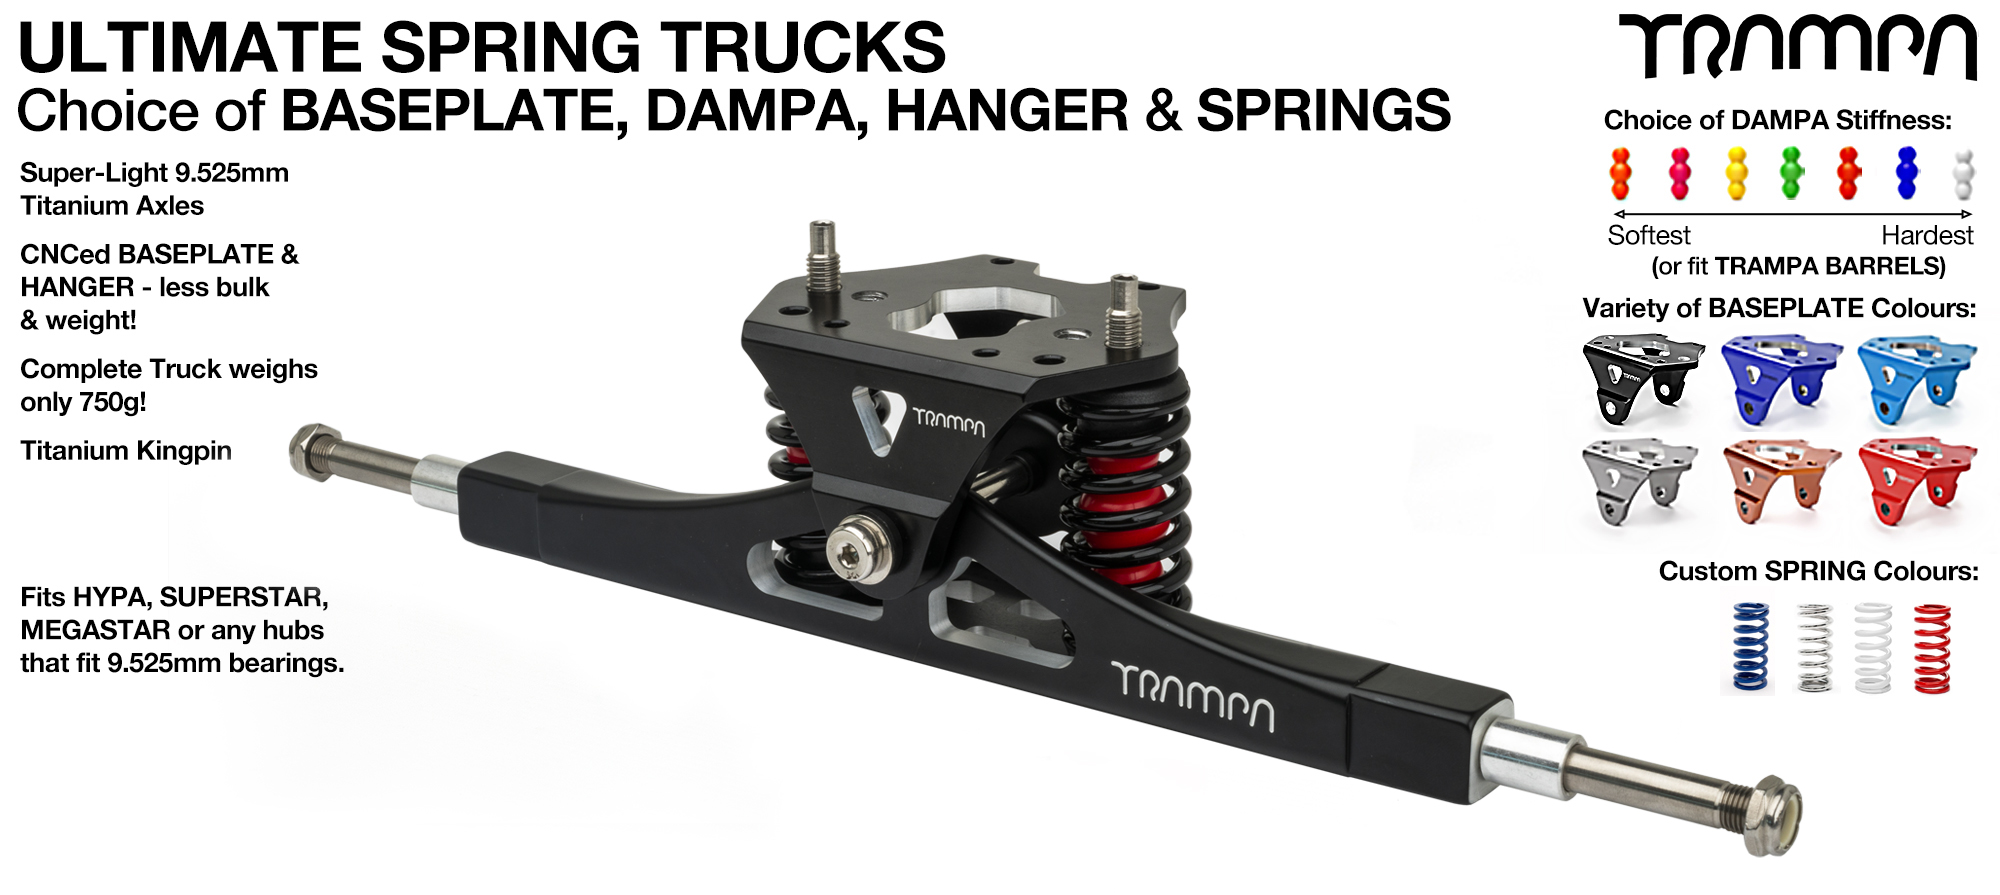 CUSTOM ULTIMATE ATB TRUCK - 16 Inch wide with TITANIUM Axel & Kingpin